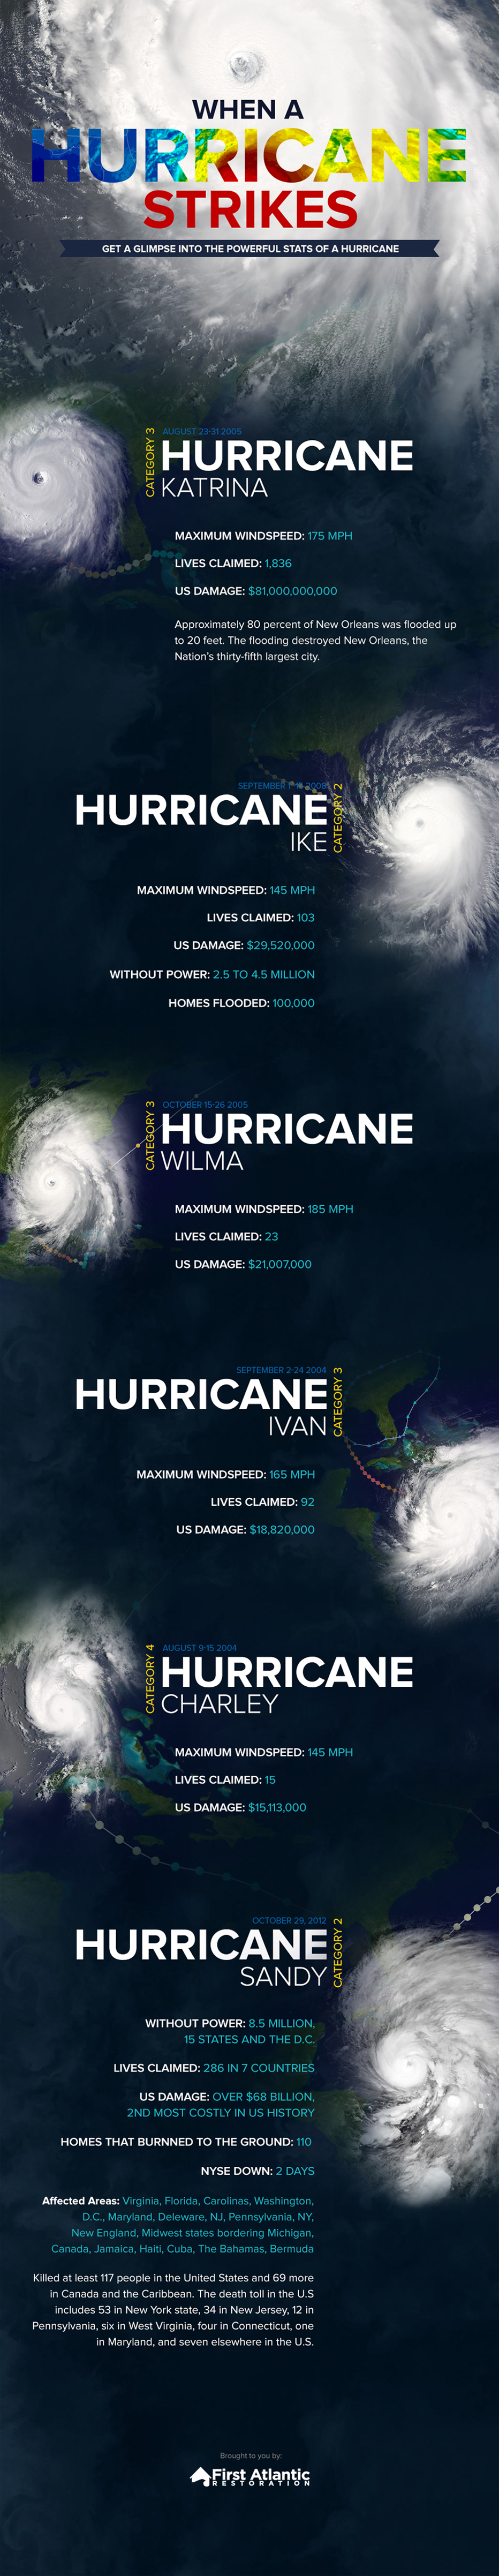 First-Atlantic-Hurricanes